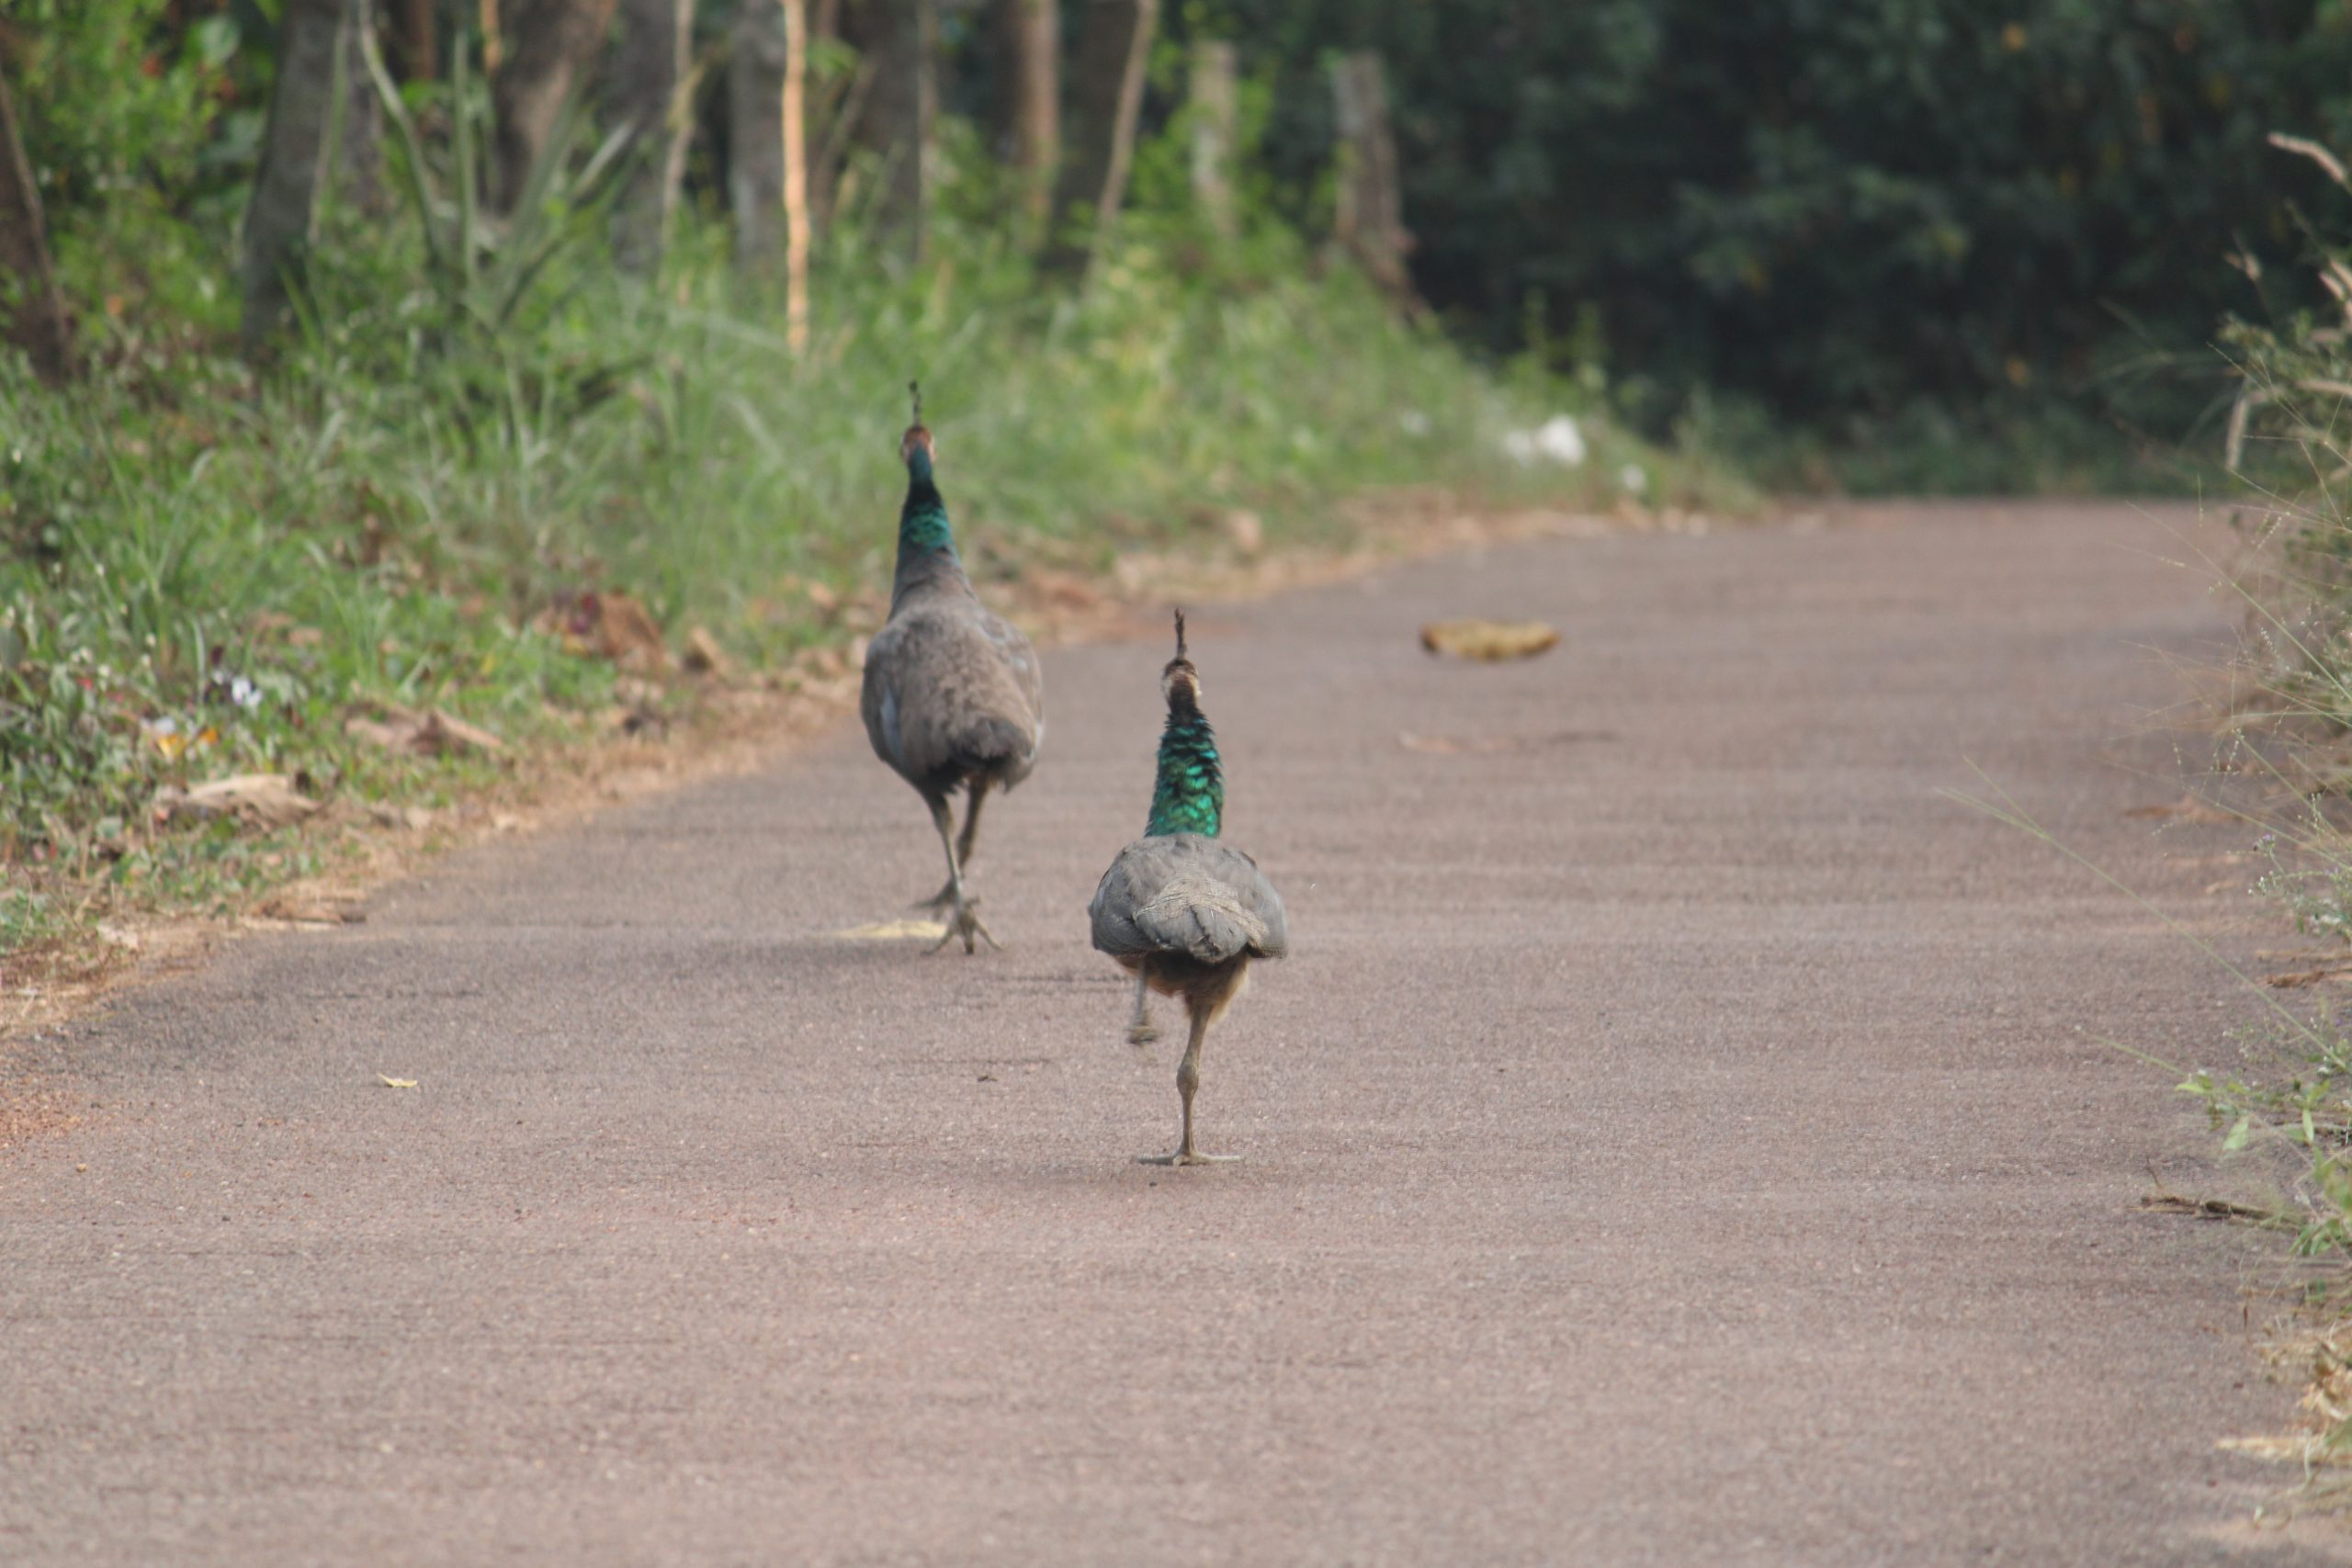 Peacocks walking on the road